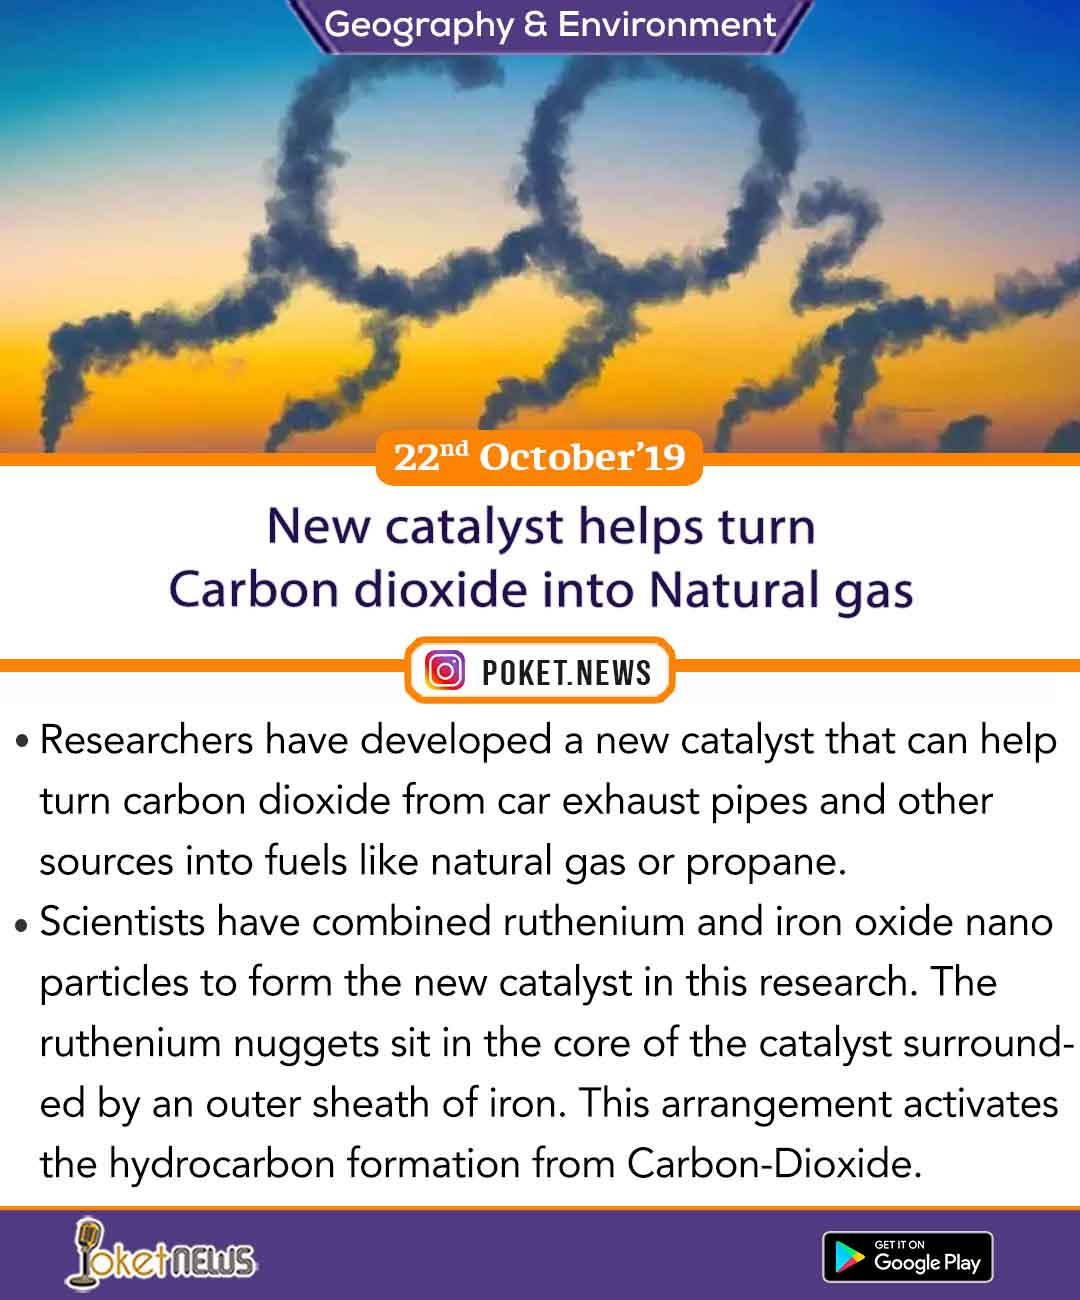 New catalyst helps turn Carbon dioxide into Natural gas